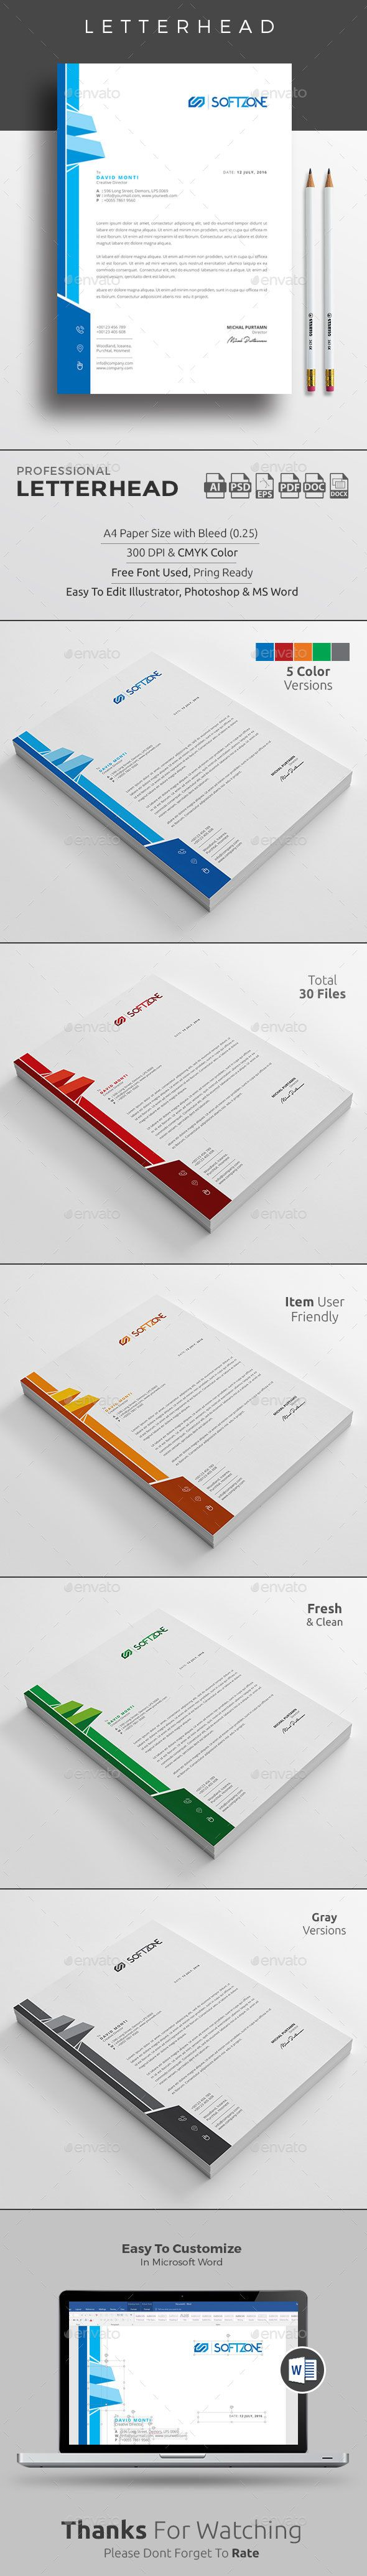 #Letterhead - Stationery Print Templates.Download here: https://graphicriver.net/item/letterhead/17097340?ref=arroganttype